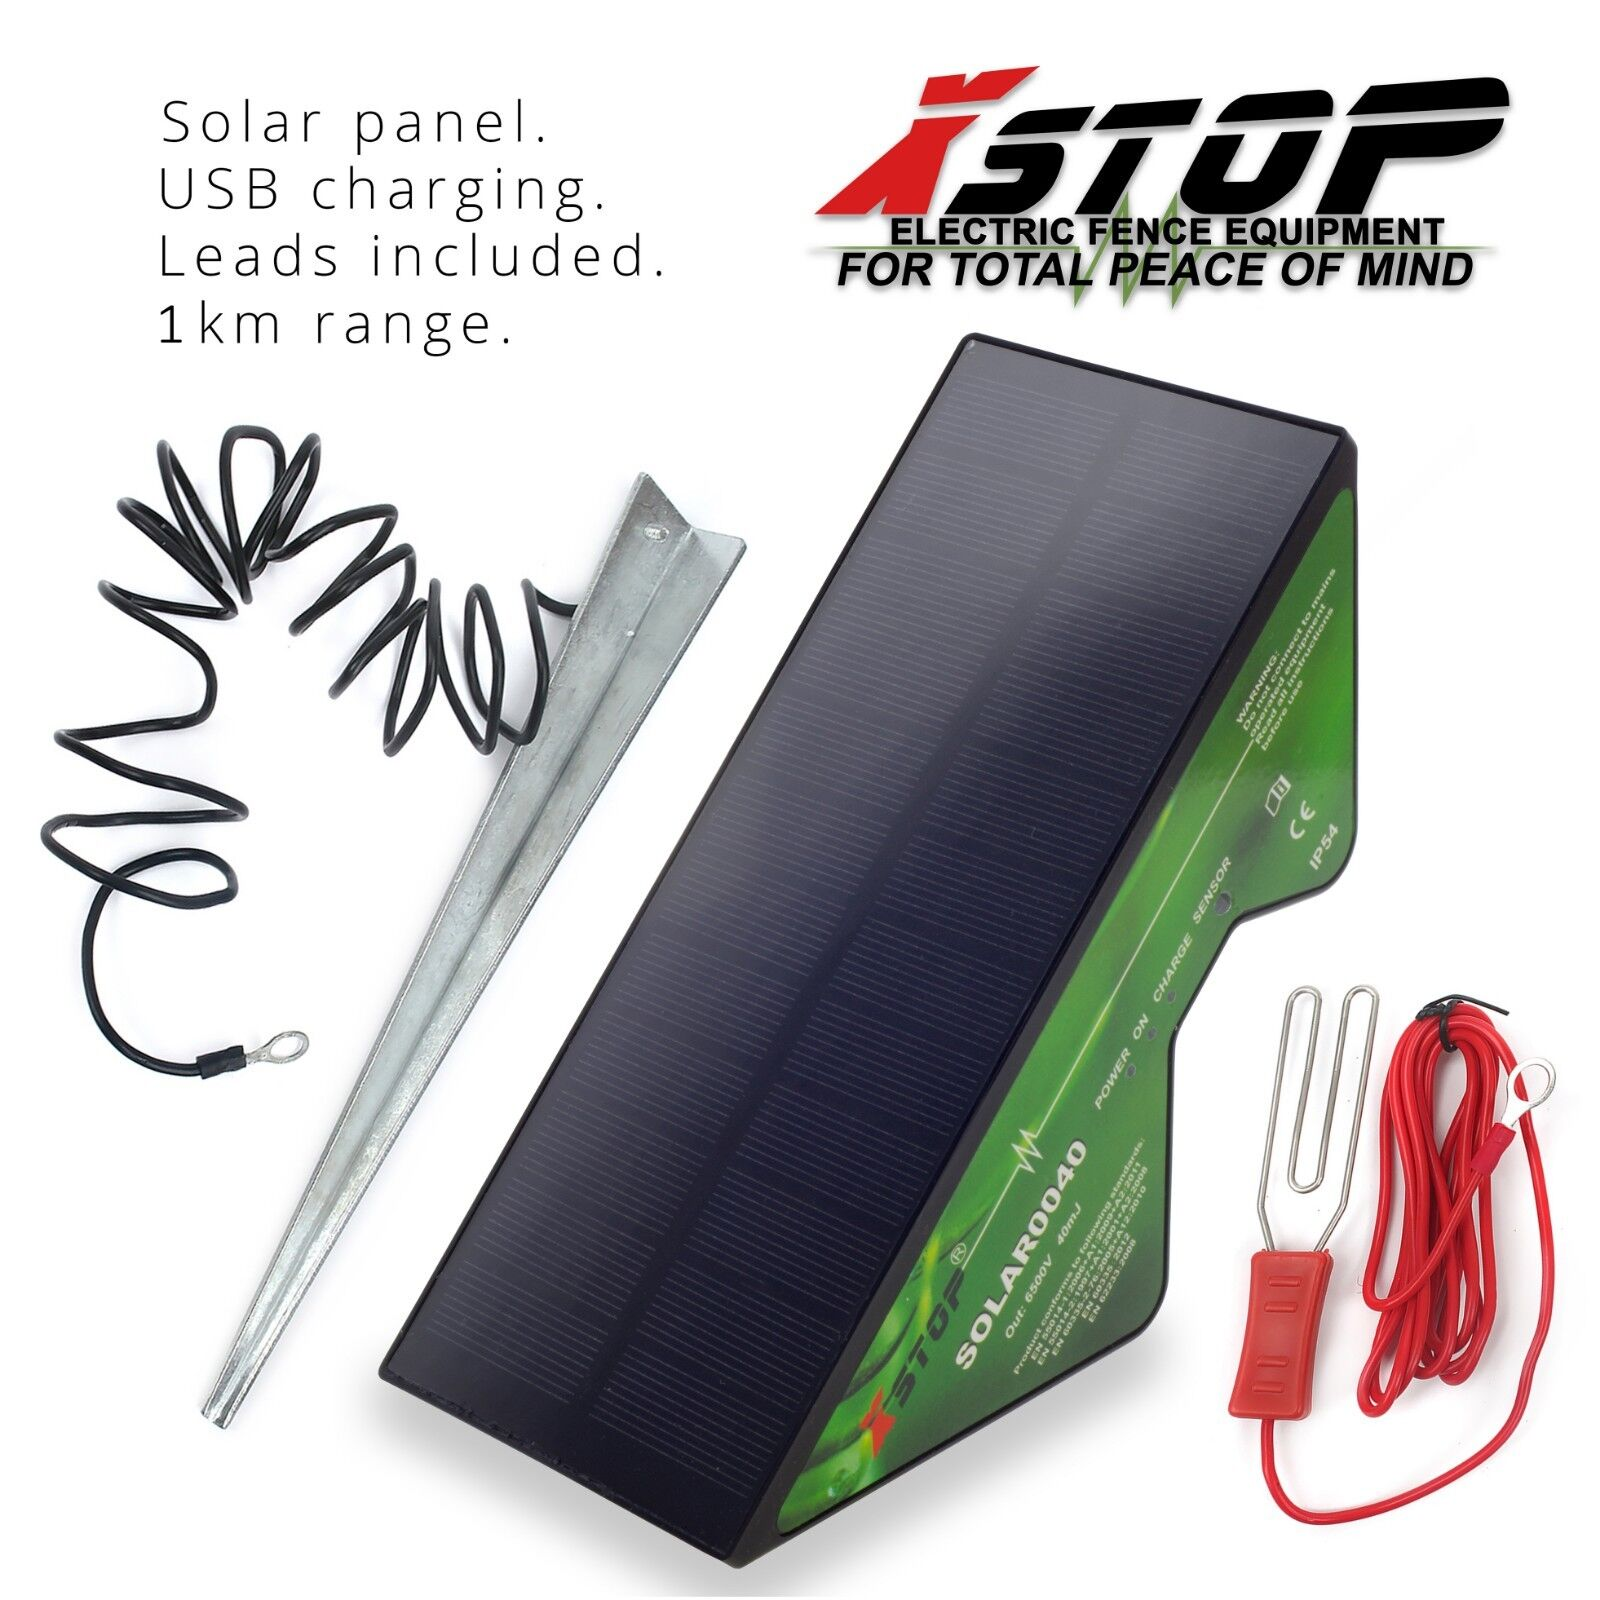 SOLAR Powered Electric Fence Energiser Unit 12v Battery Kit Earth Panel Included